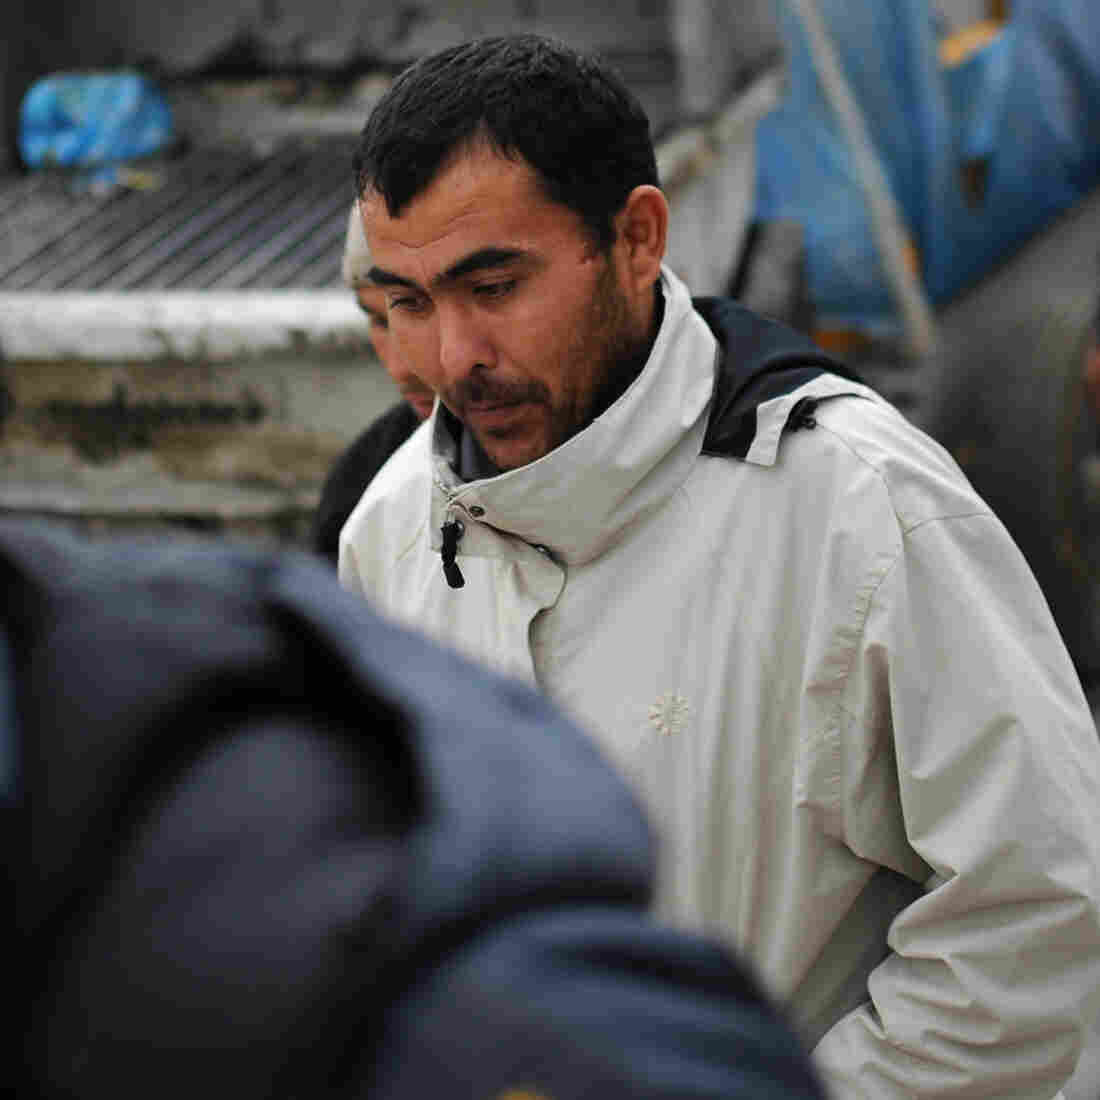 Migrant workers follow a police officer during a raid by Russian immigration authorities at a construction site in Moscow, in 2012.